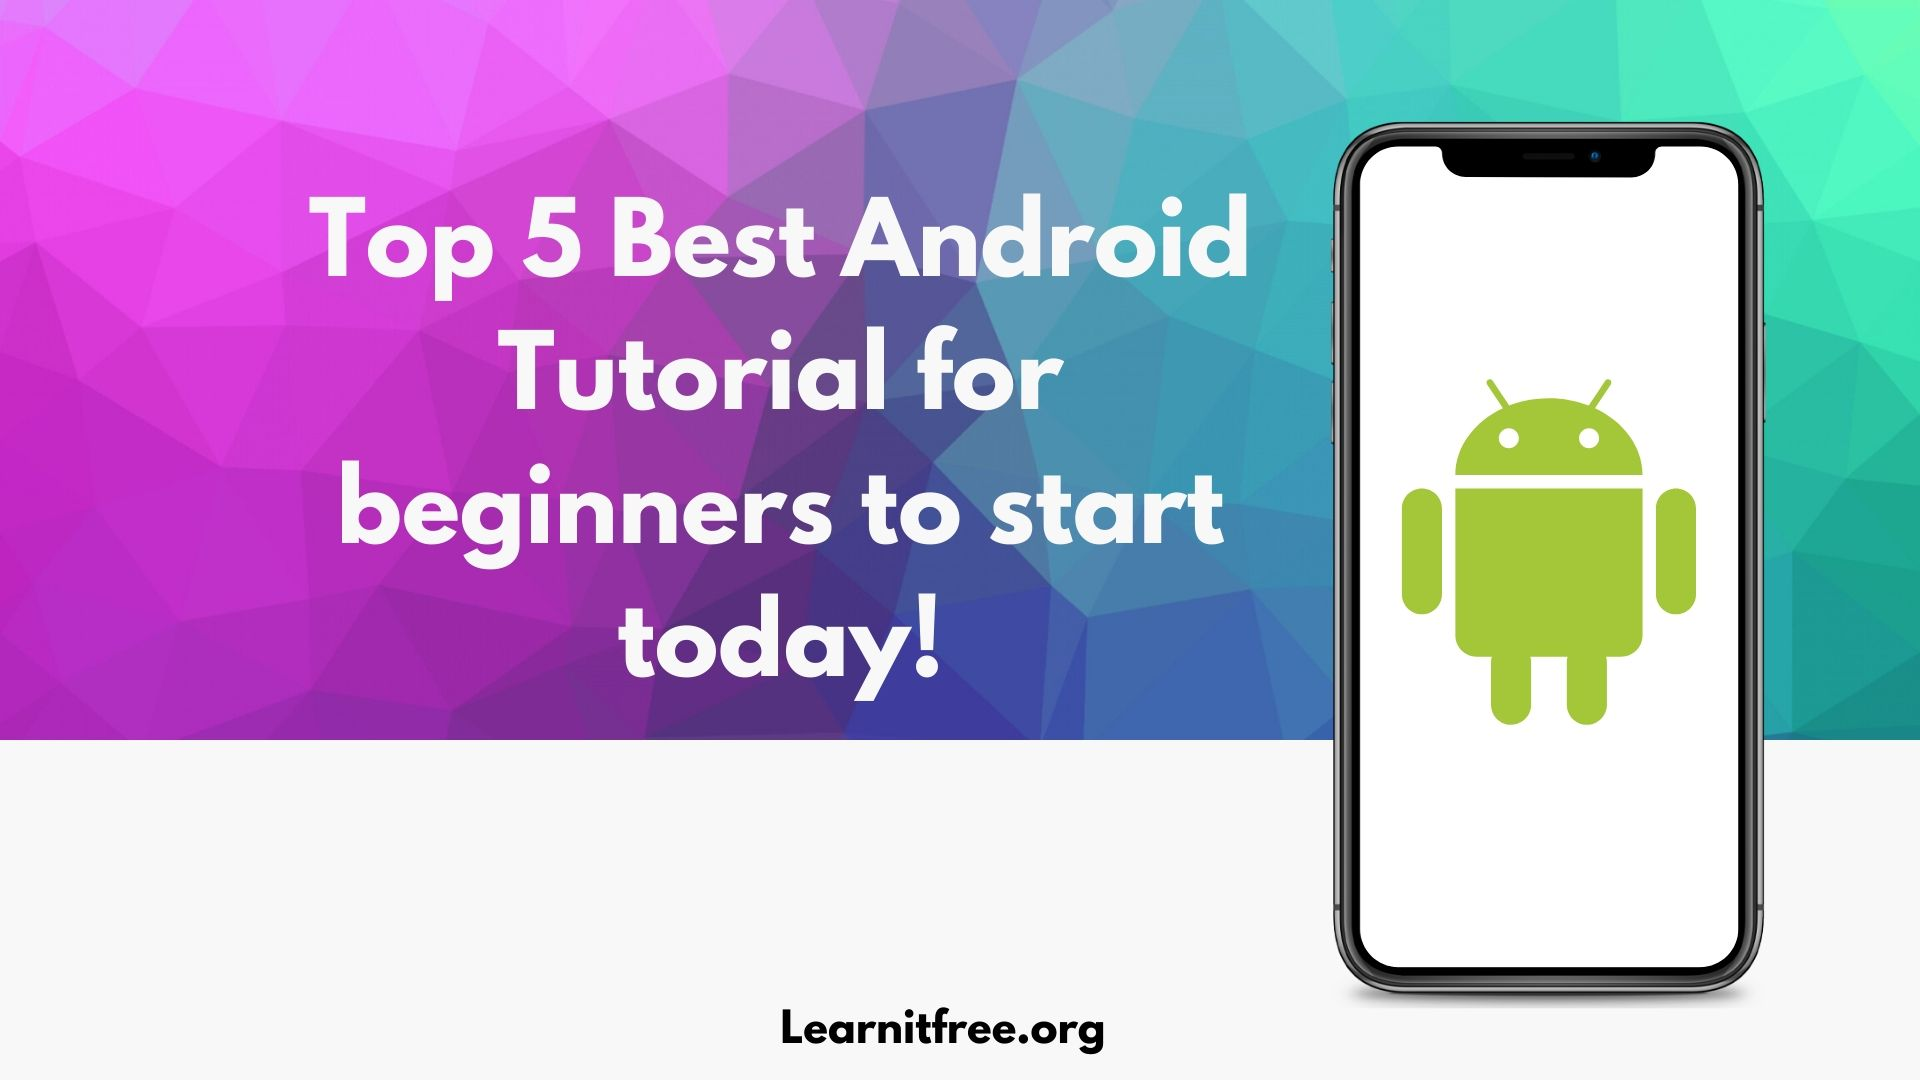 It is the featured image for the blog post Top 5 Best Android Tutorial for beginners to start today!